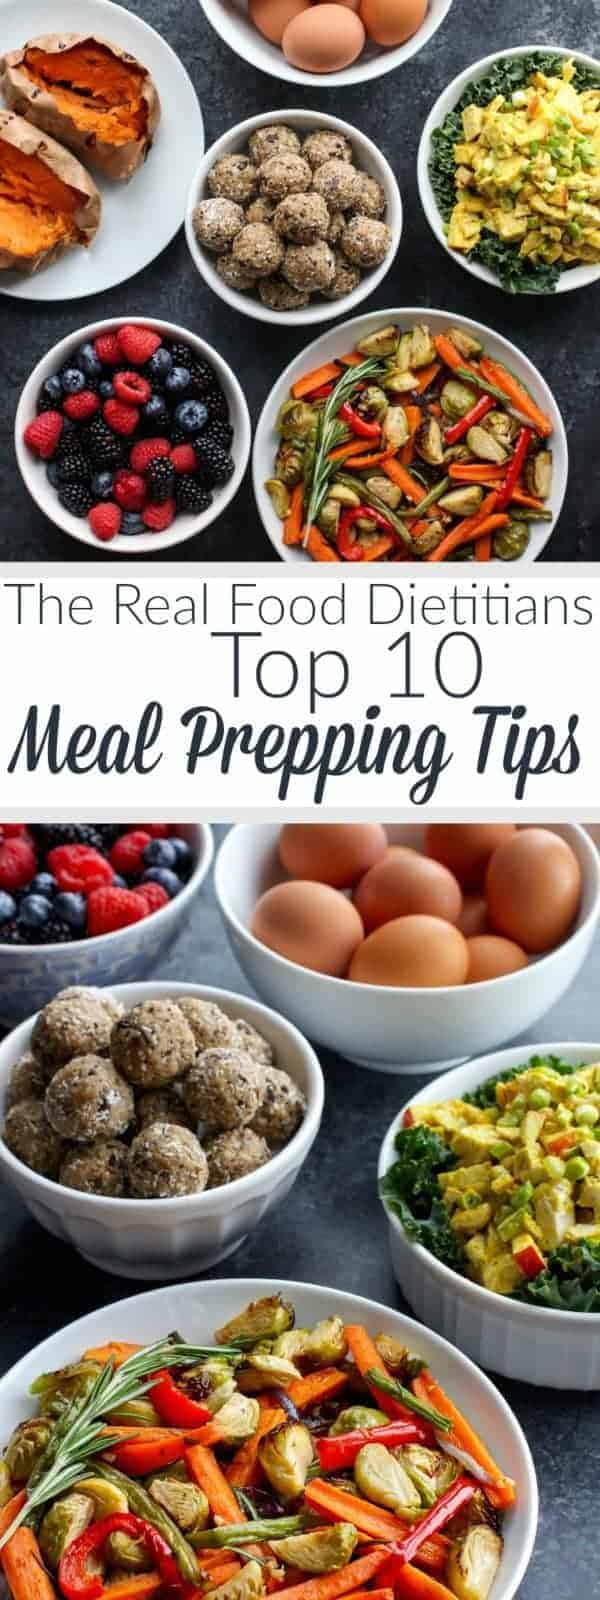 Pinterest image for Top 10 Meal Prepping Tips